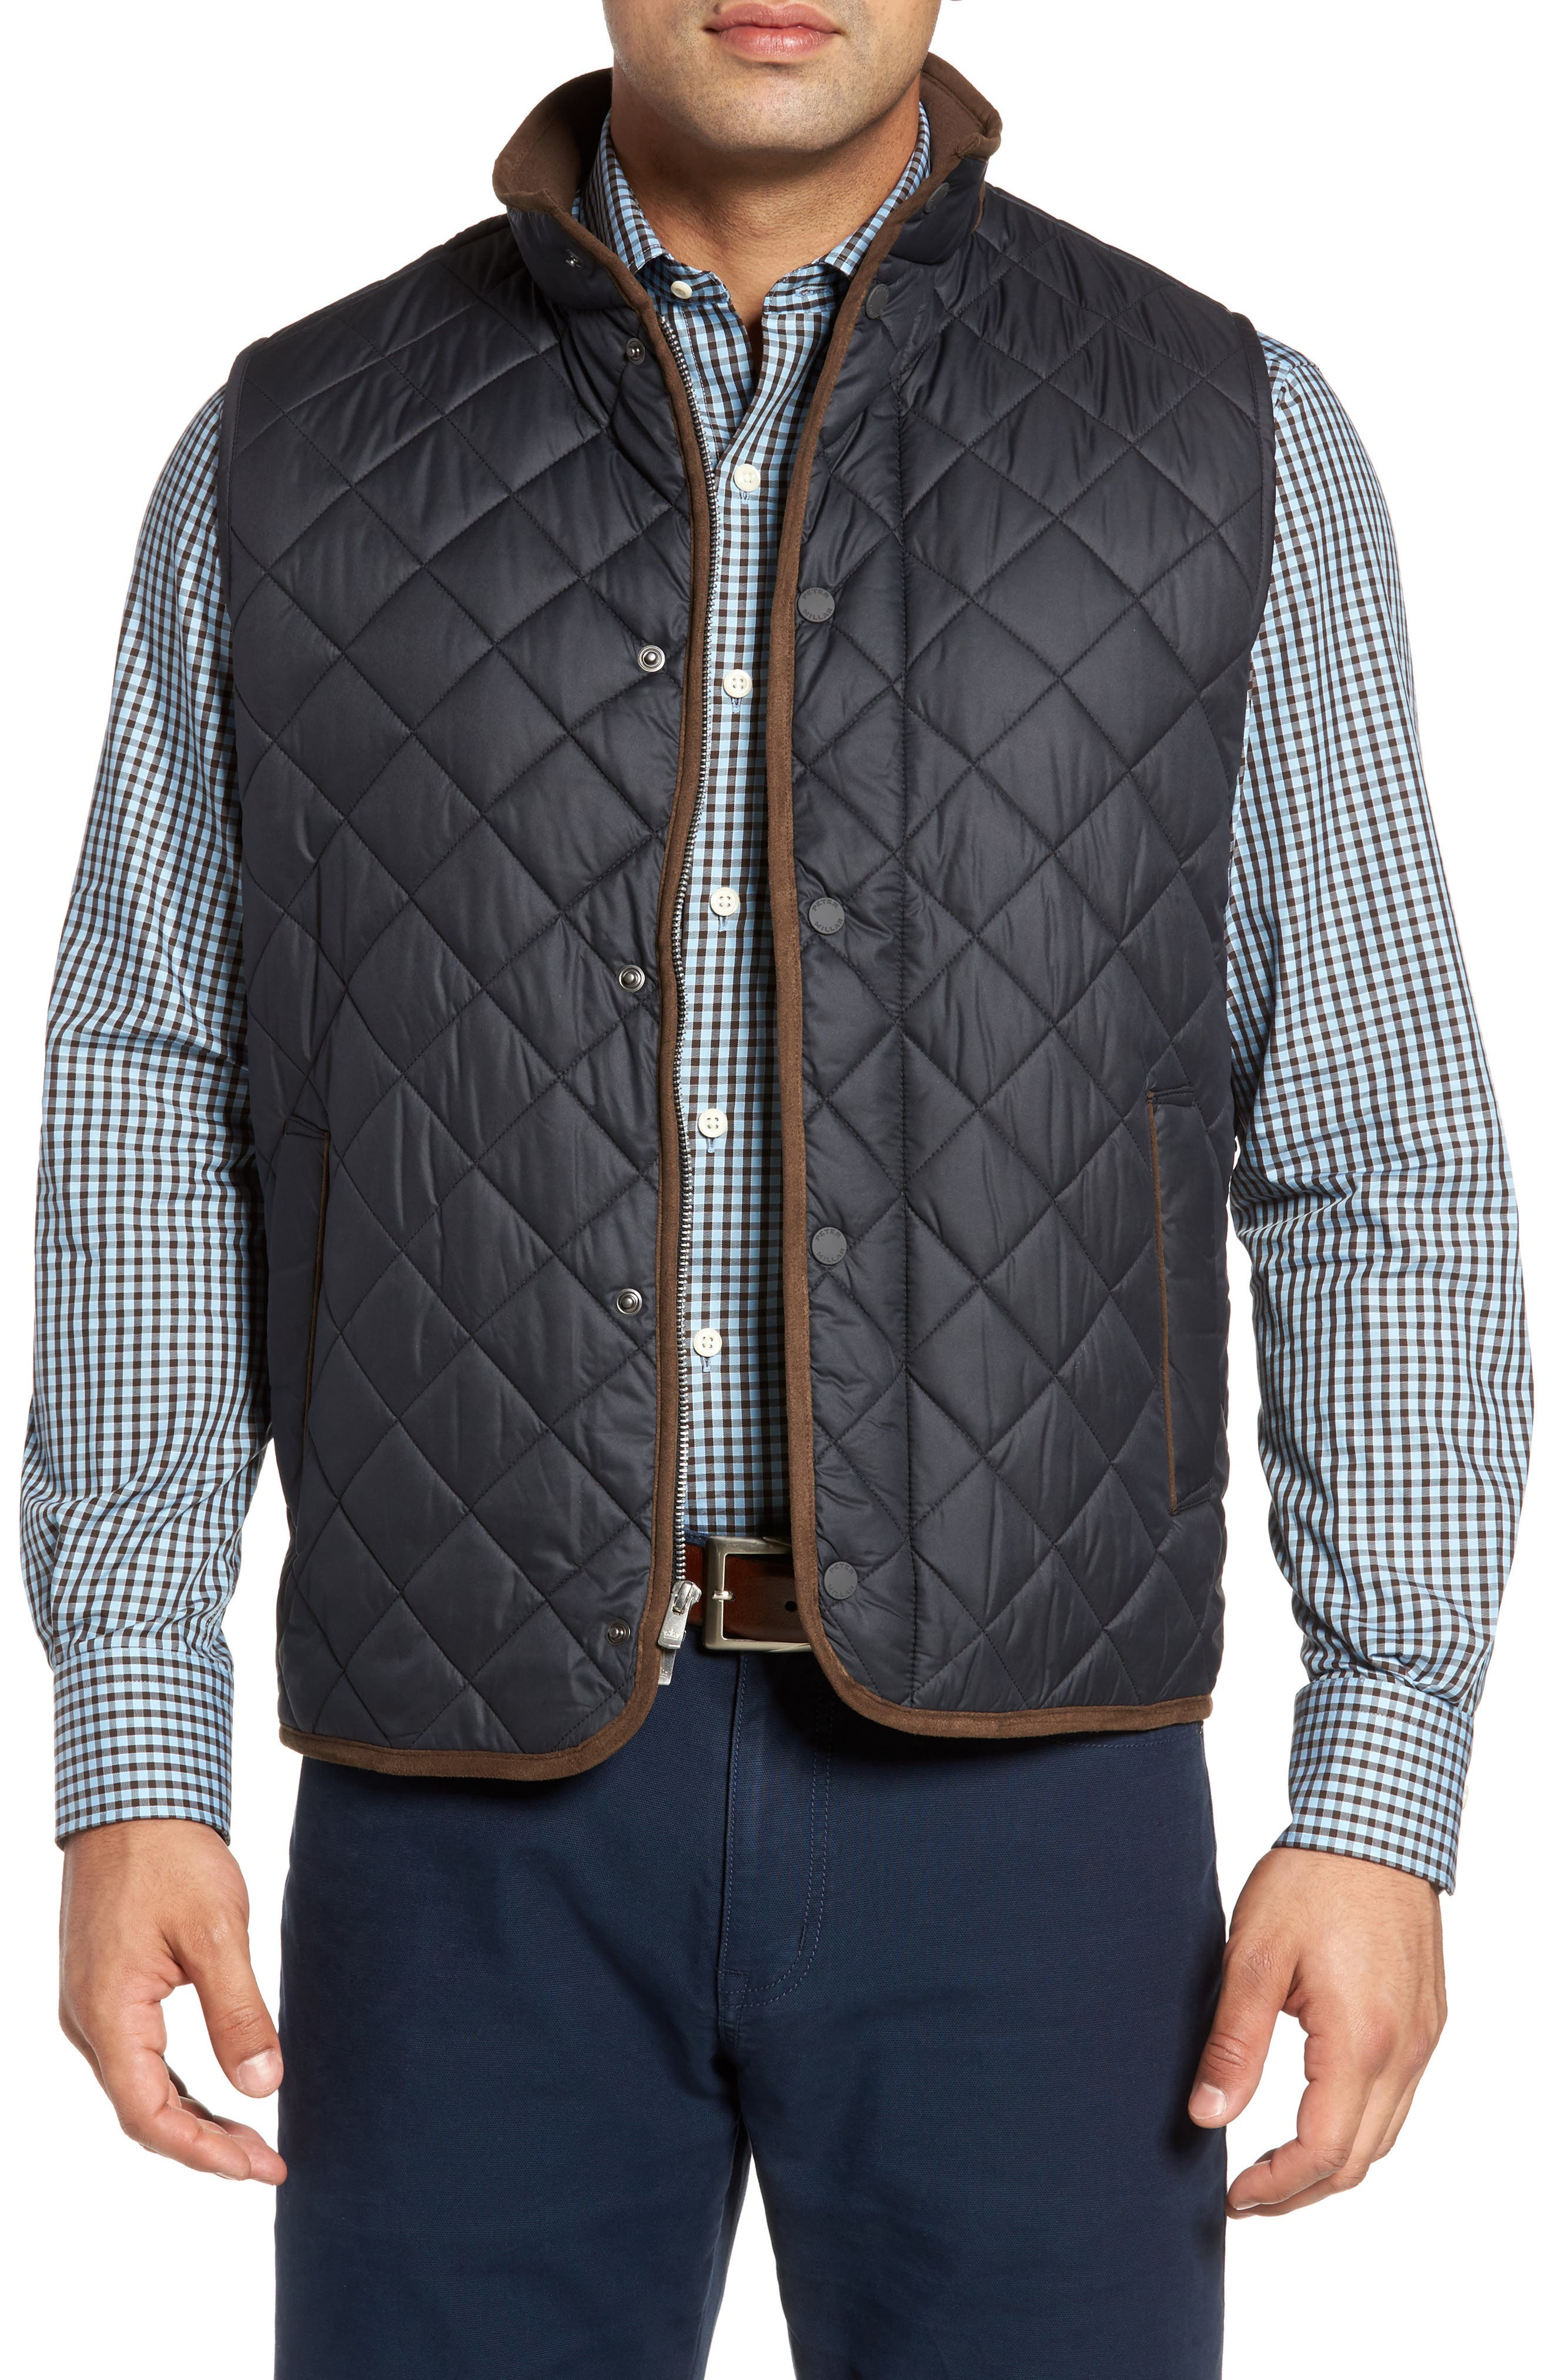 Essex Quilted Vest,                         Main,                         color, 001